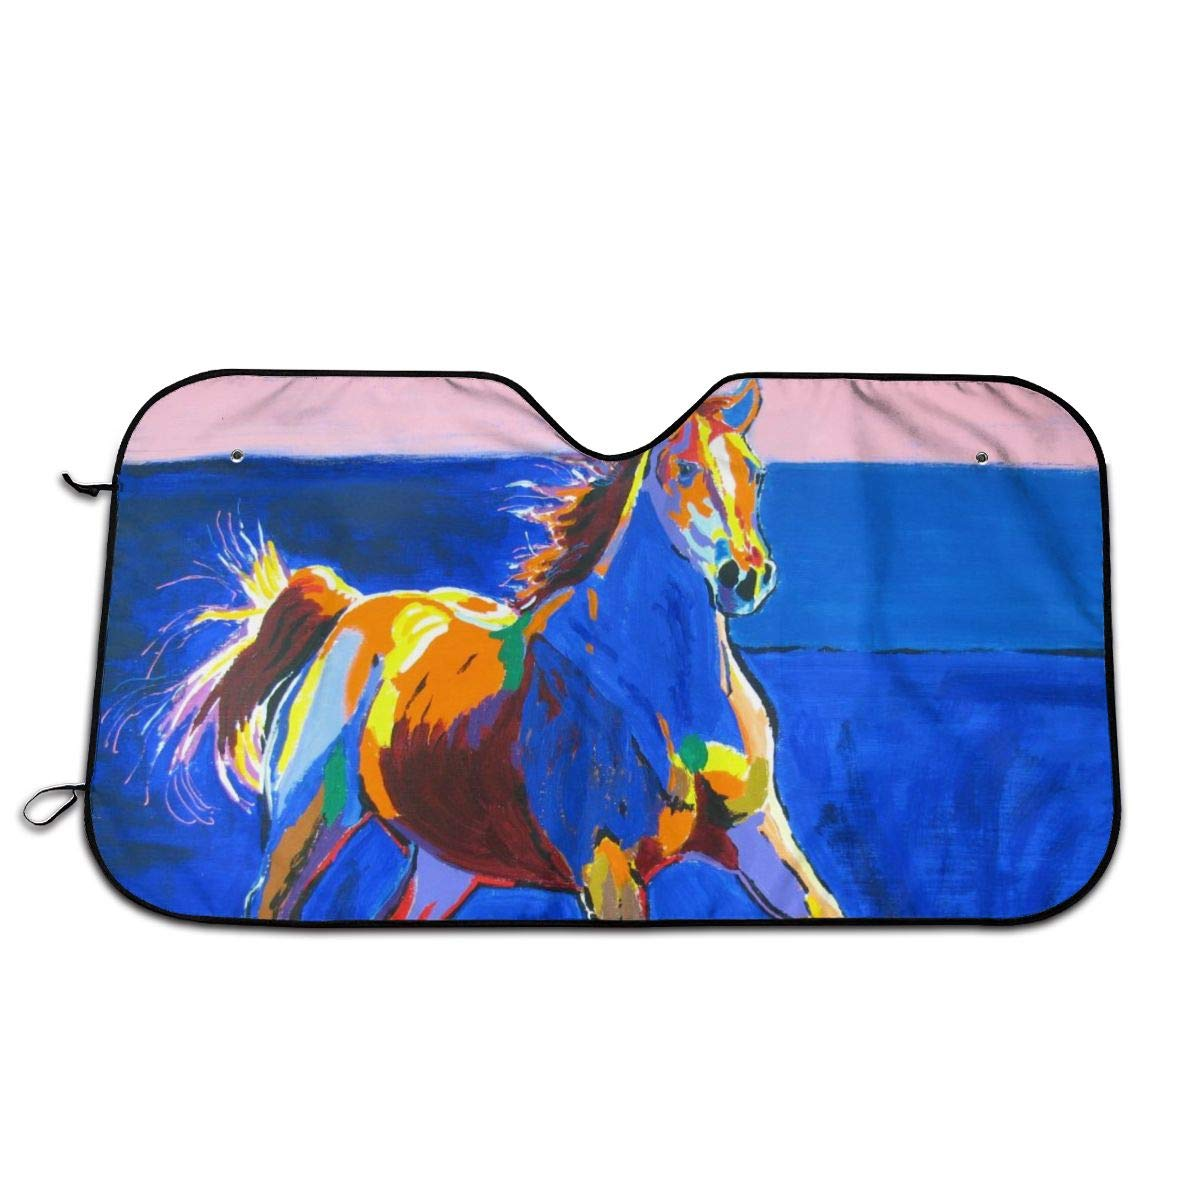 Horse Paint Car Sunshade 51.2 * 27.5 in Oxford Cloth + Pearl Aluminum Film Heat Resistant, Effectively Protect Your Car Interior from Aging by Rojia